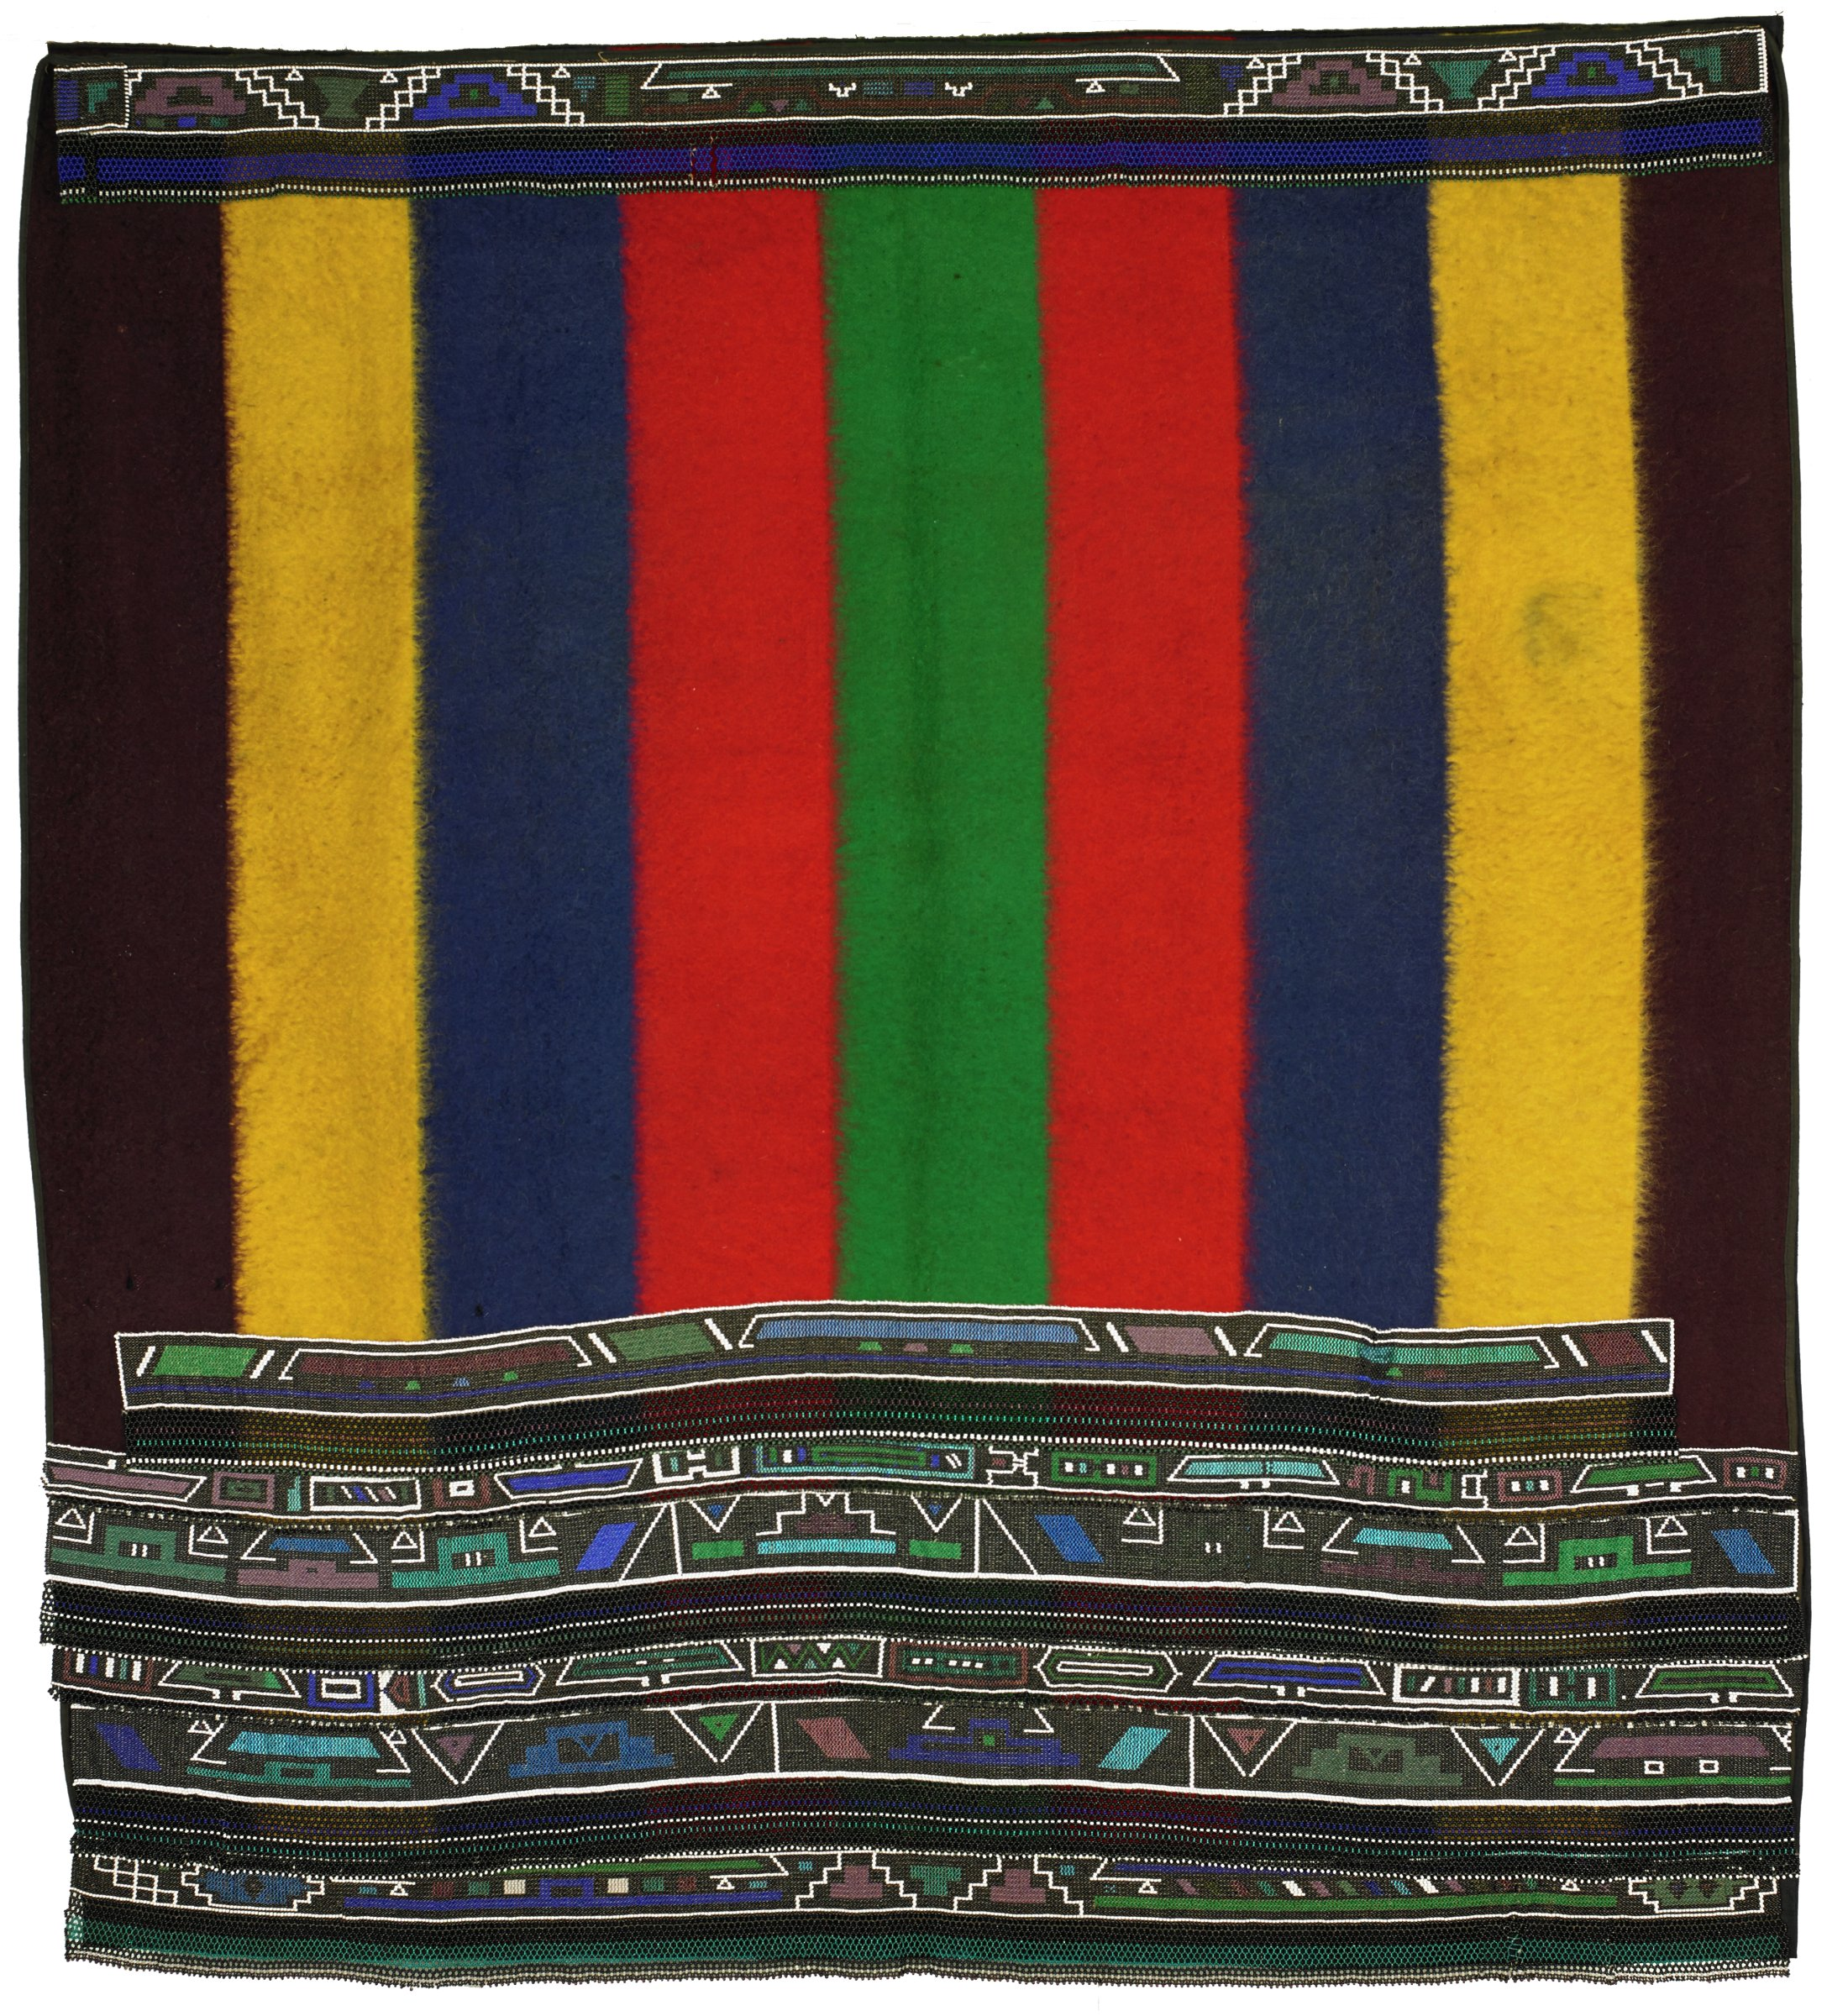 Marriage Blanket, Ndebele people, South Africa, African, Middleburg wool blanket, glass beads